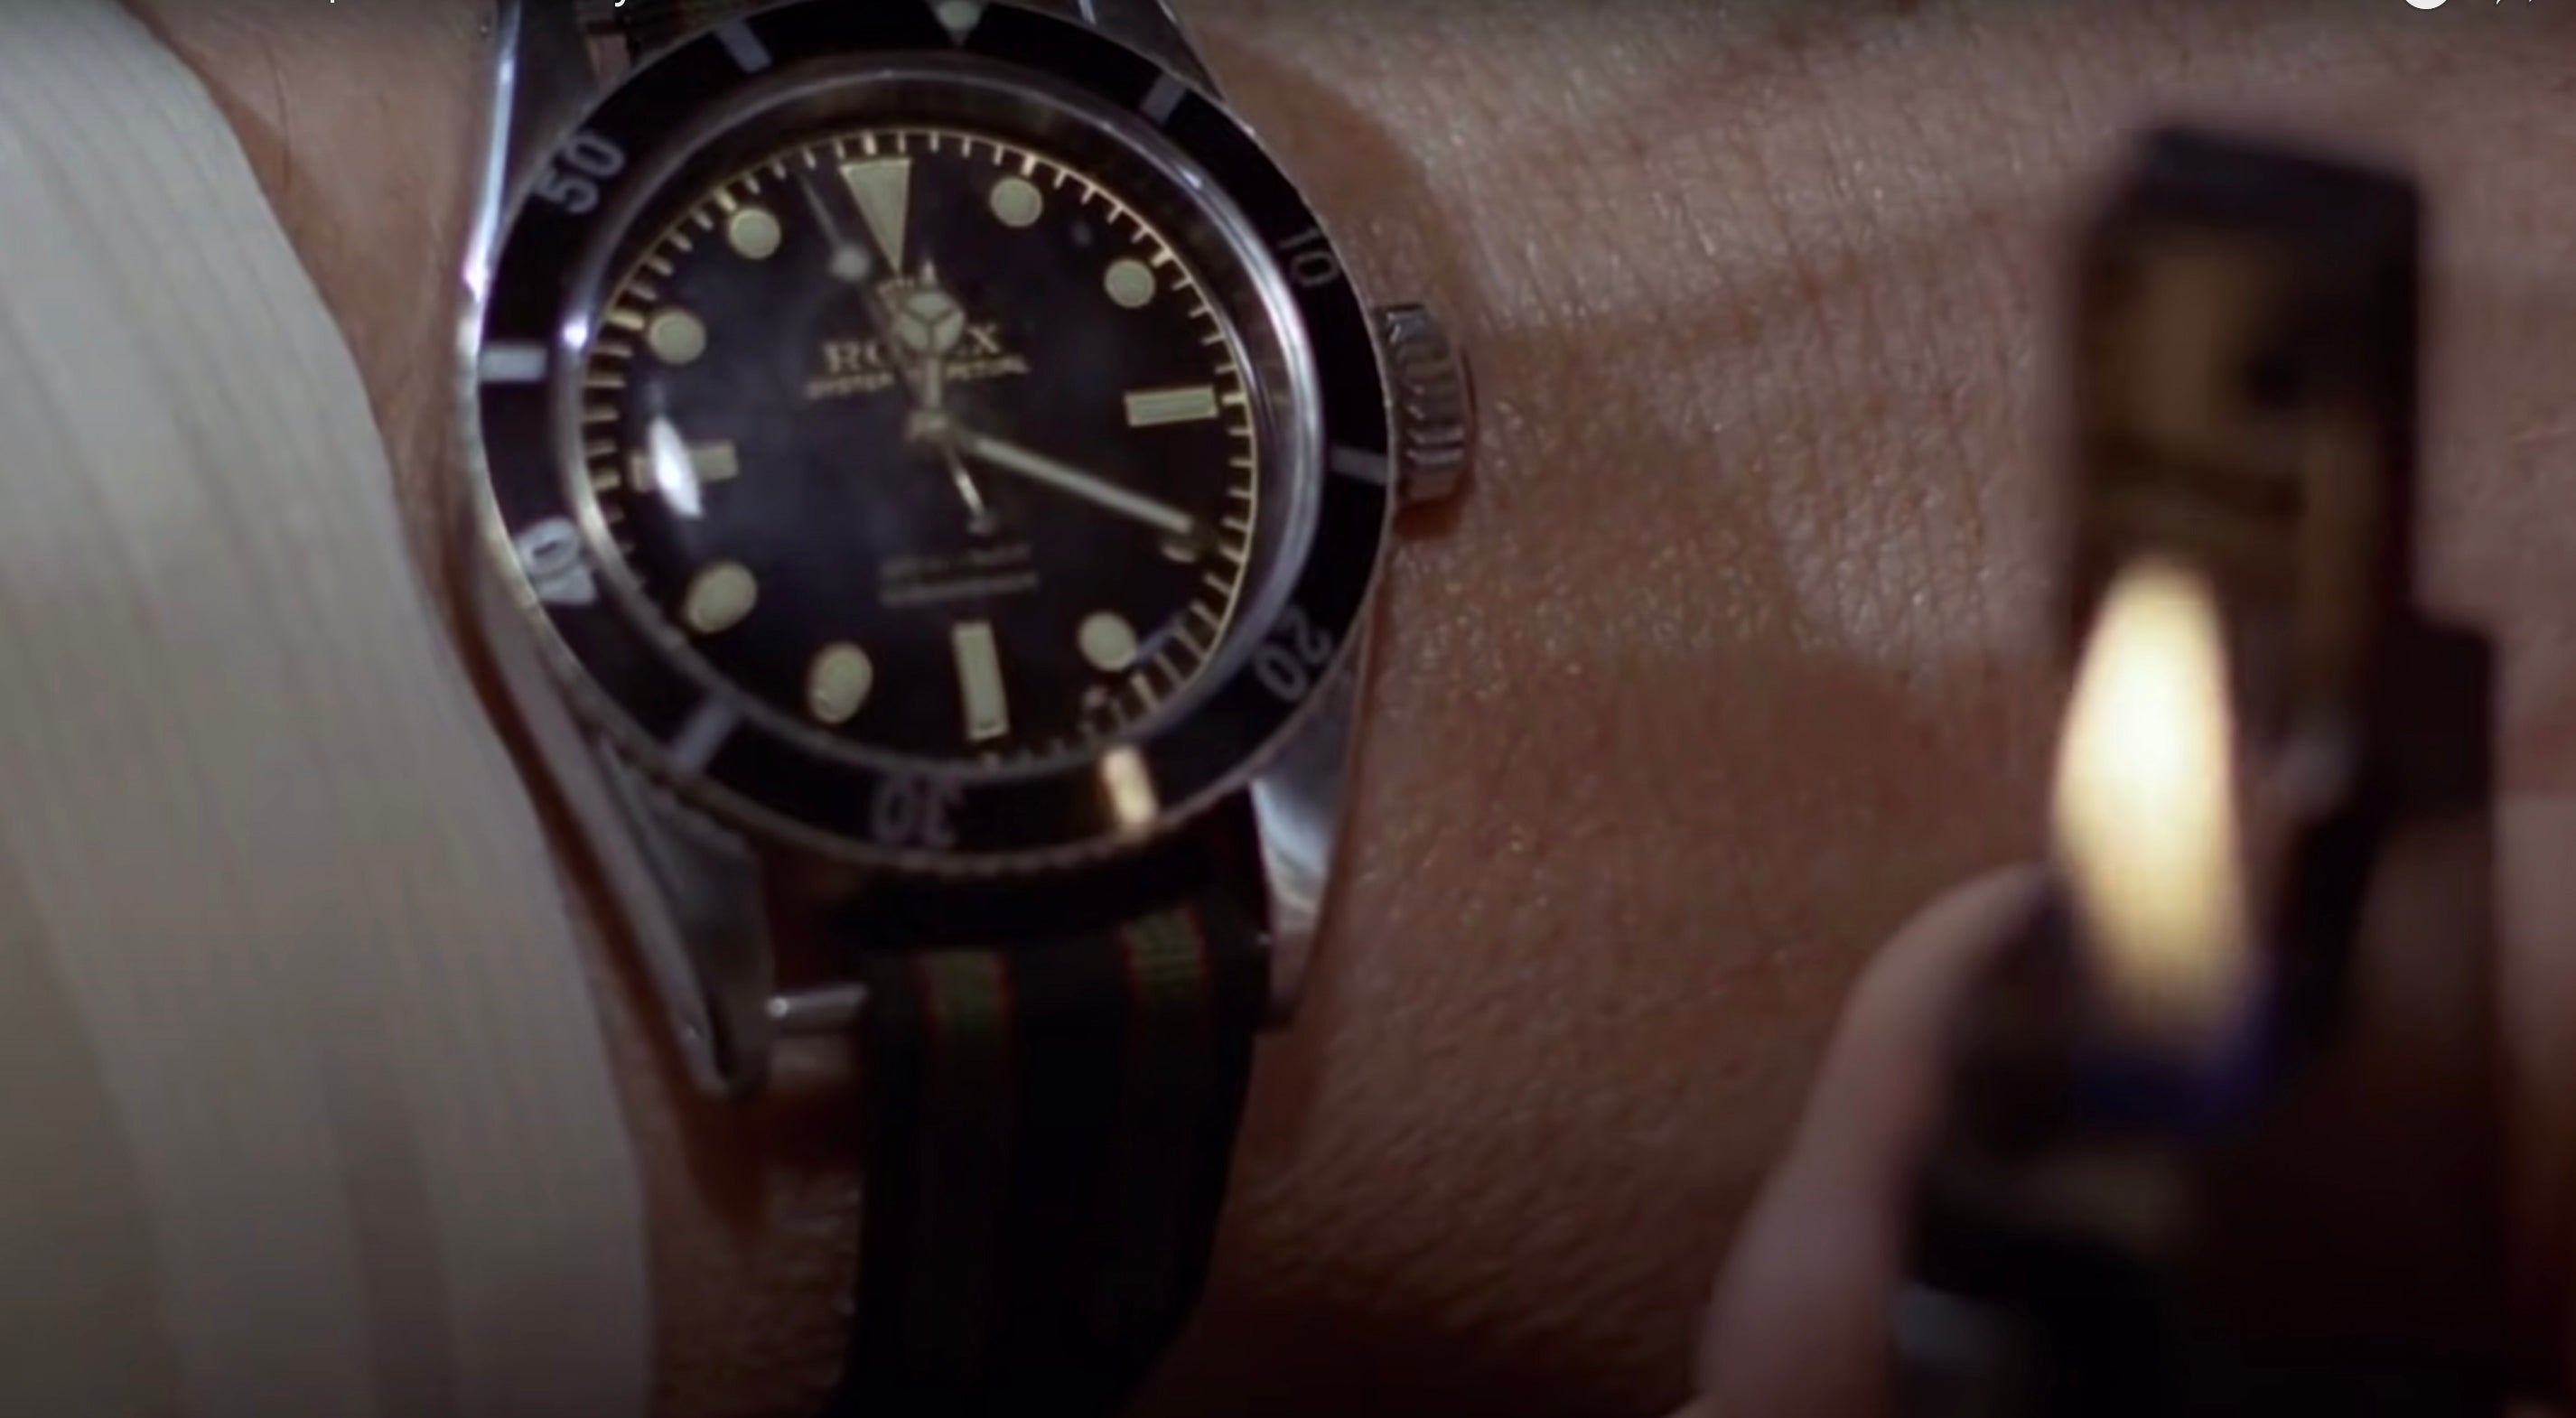 Rolex Submariner Big Crown on James Bond's wrist in Dr. No for A Collected Man London